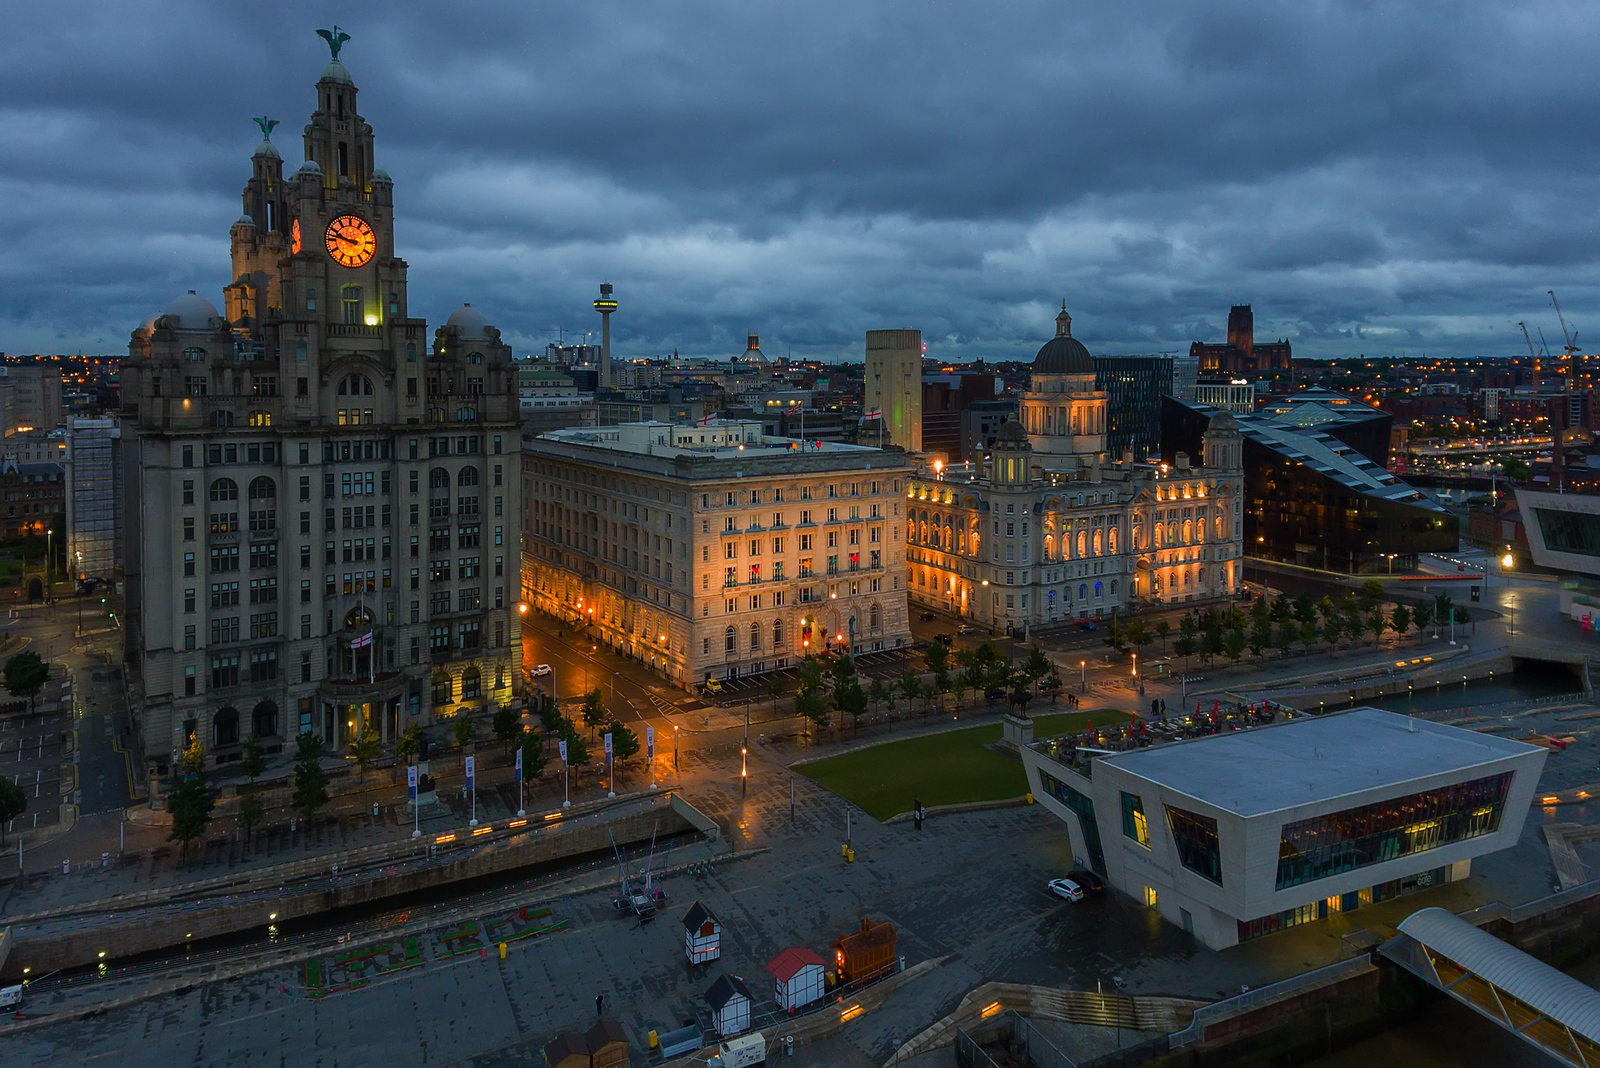 The Three Graces, Pier Head, Liverpool at night